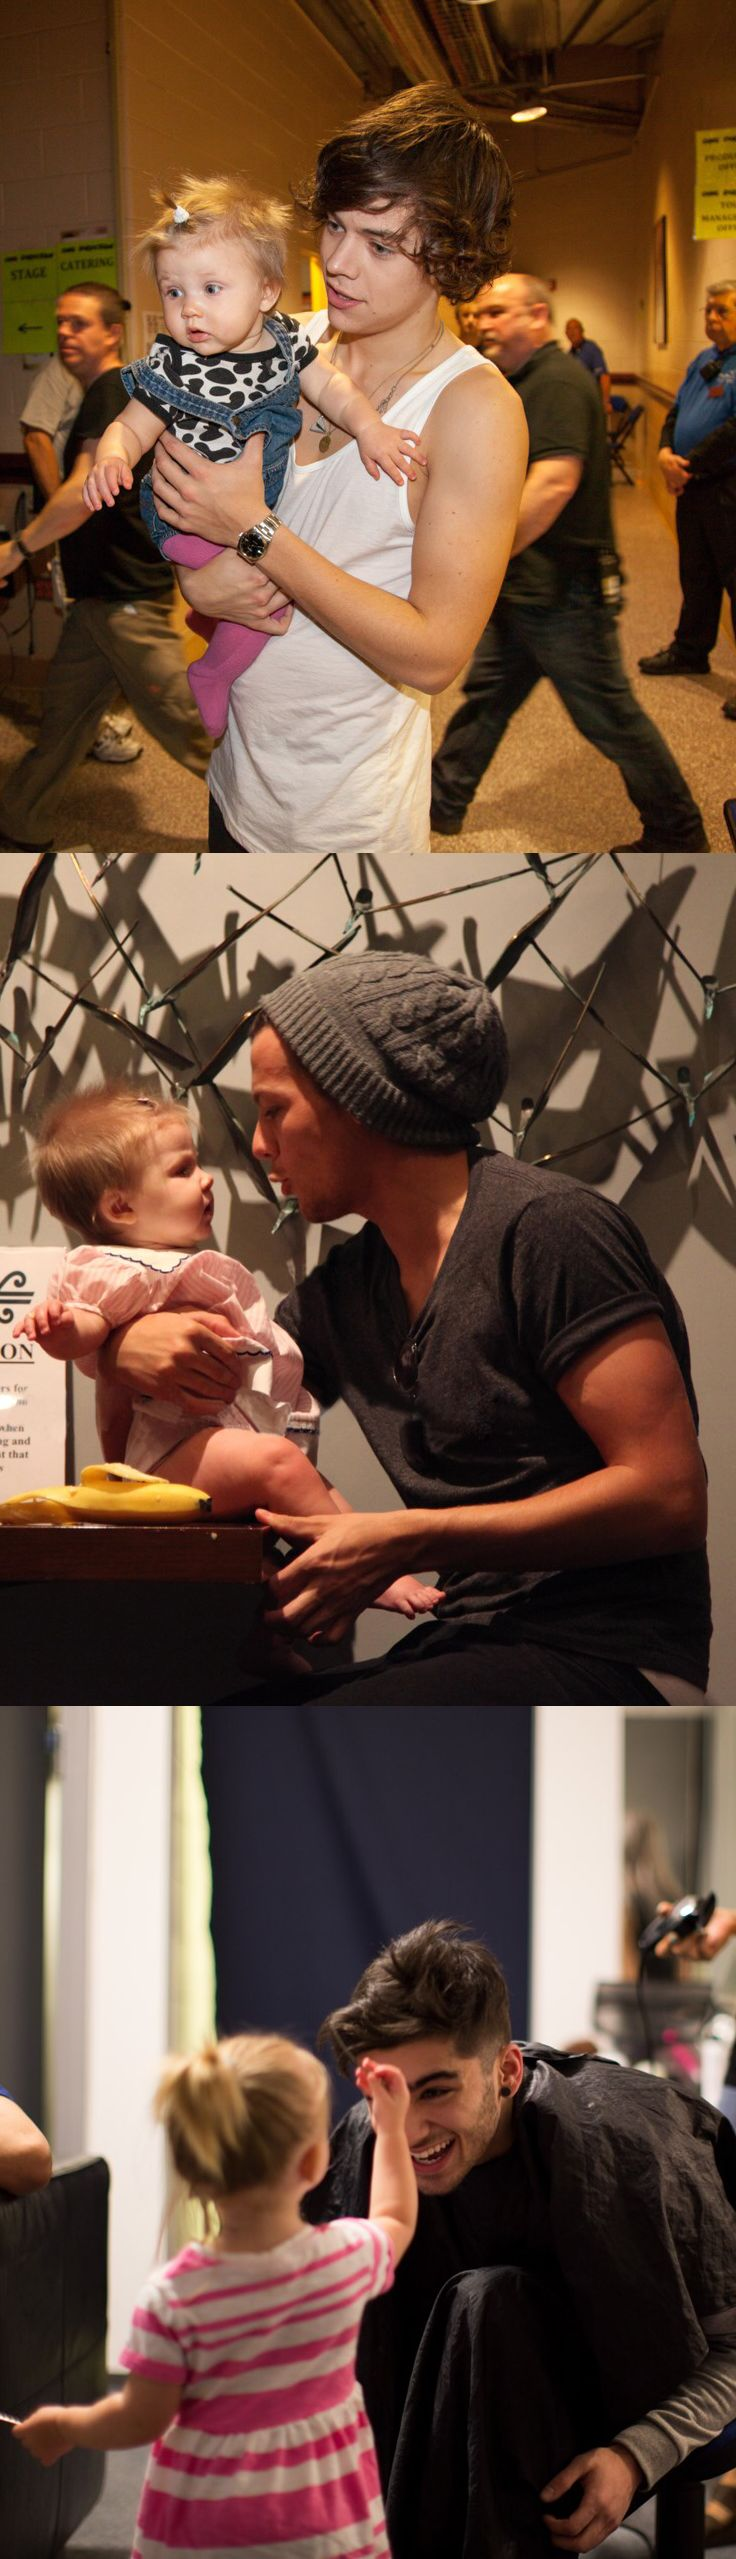 Aweee! The boys with babys